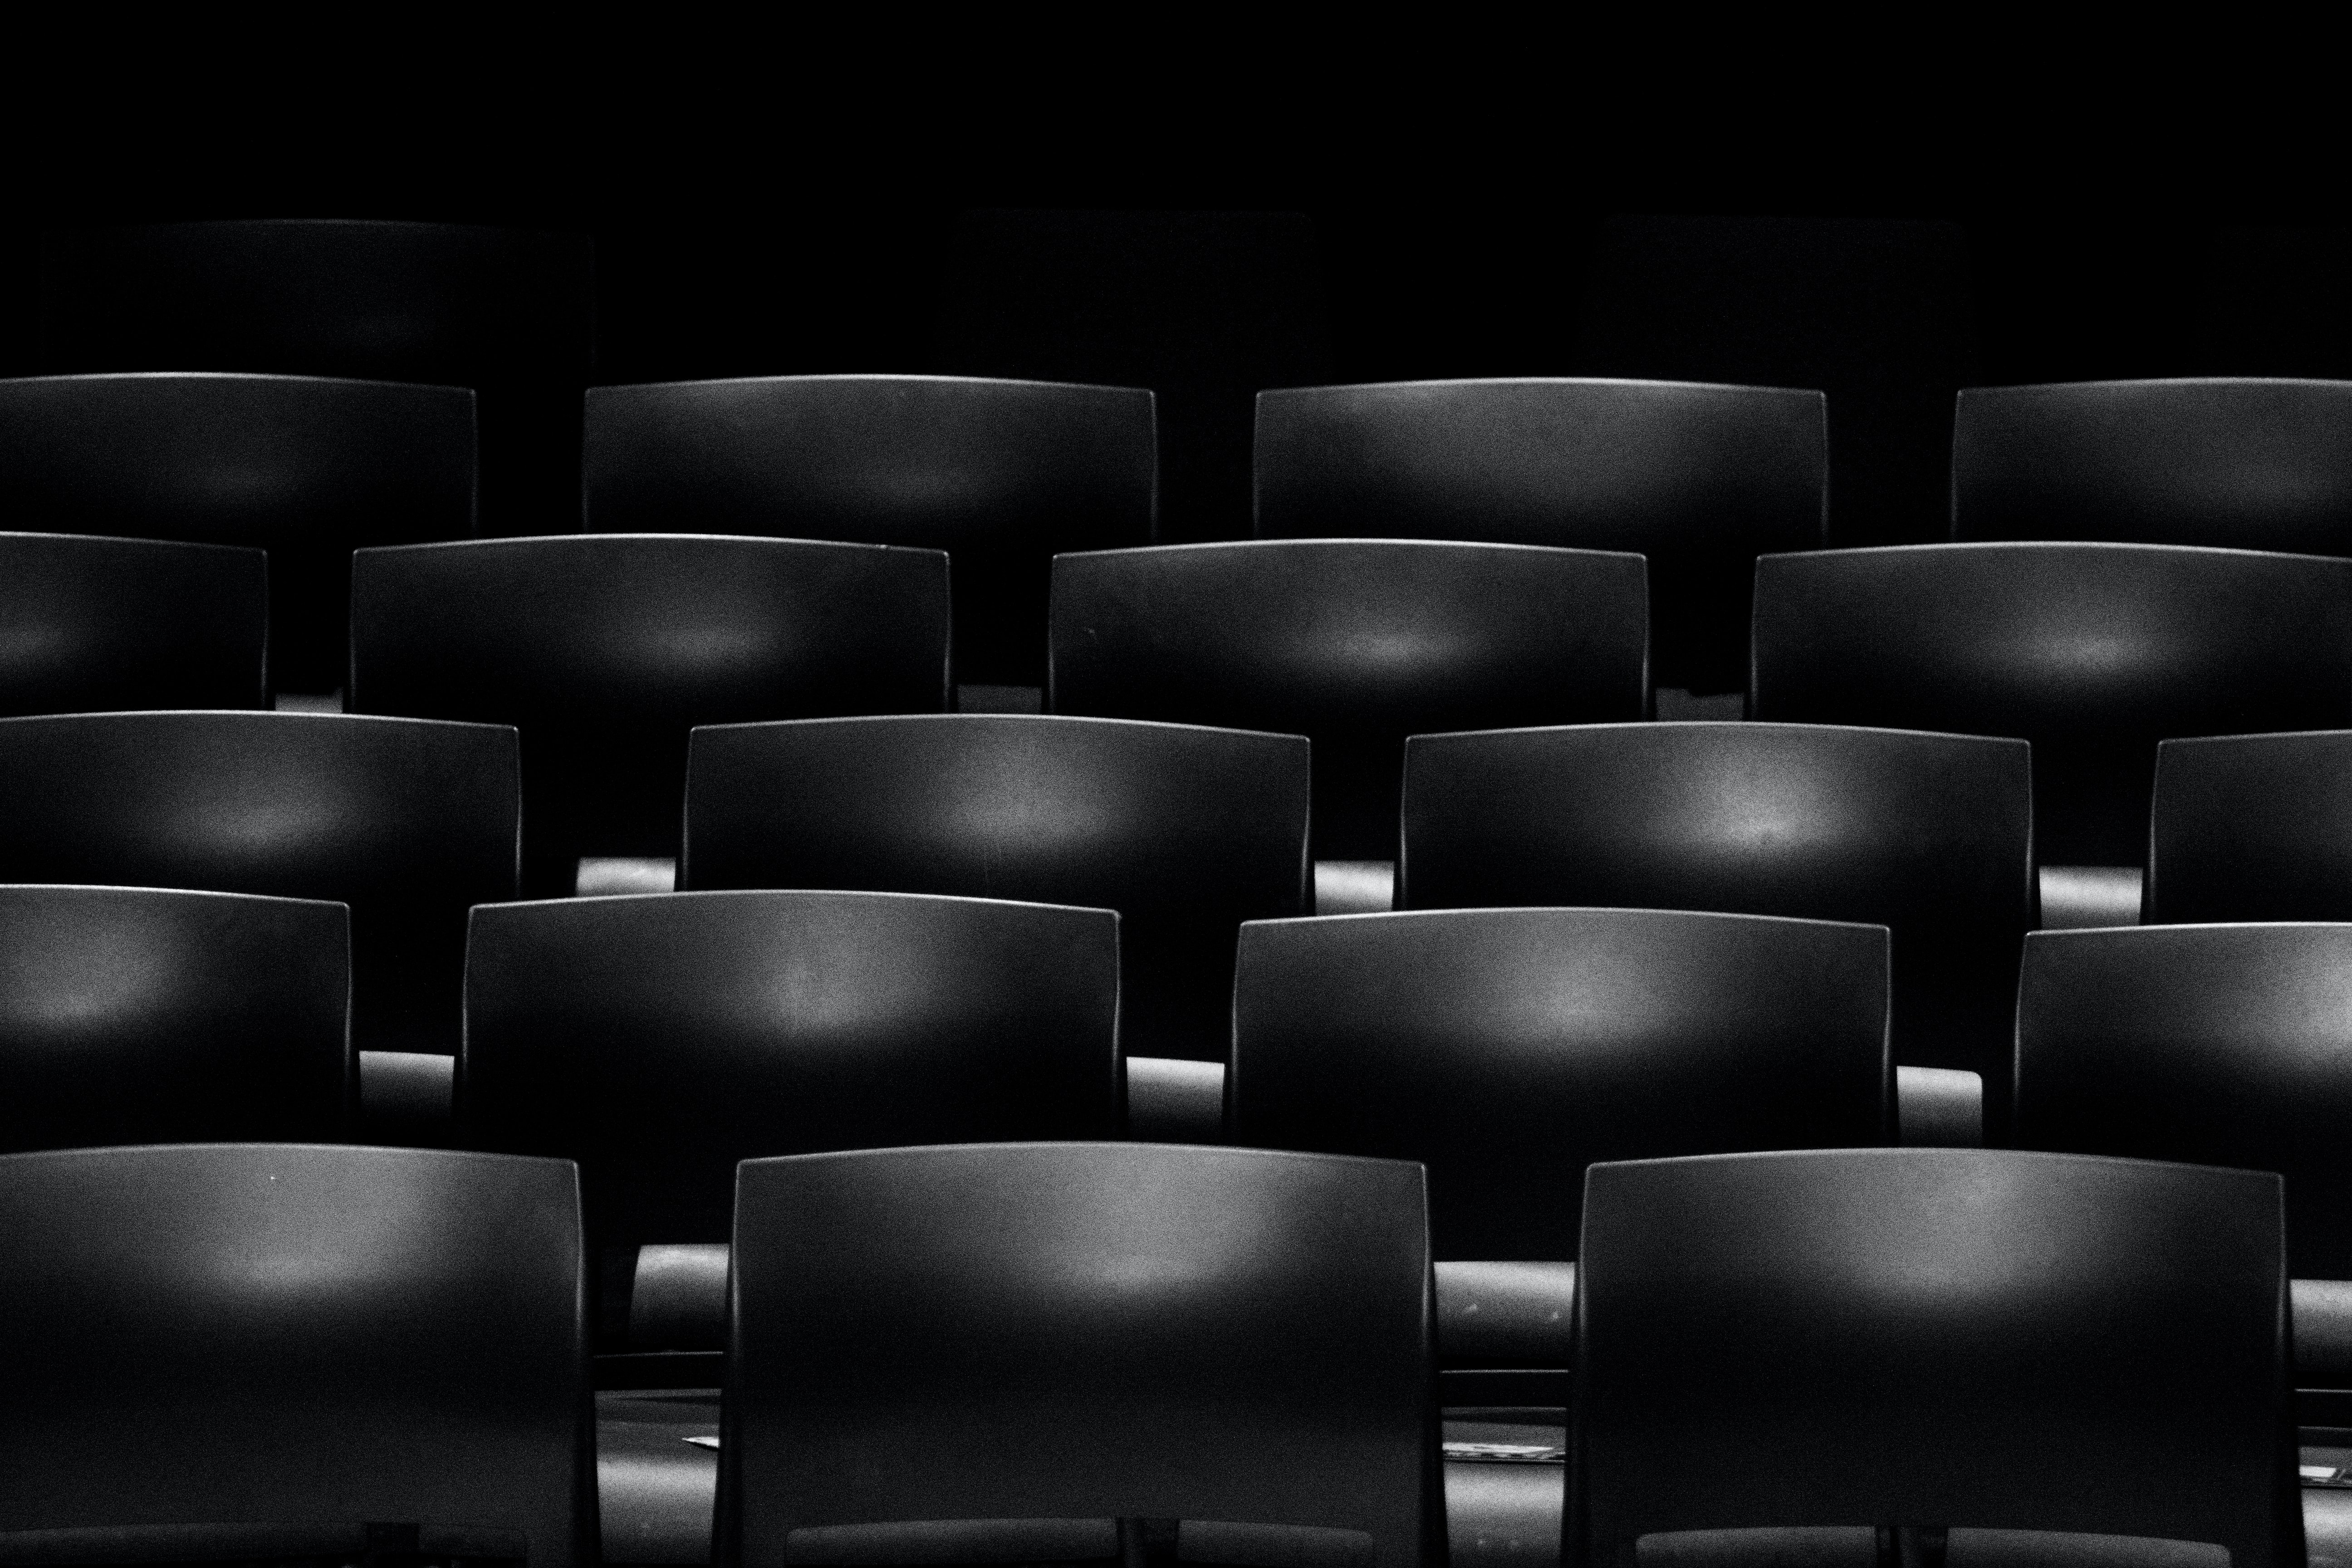 A dim shot of rows of empty seats in a movie theater